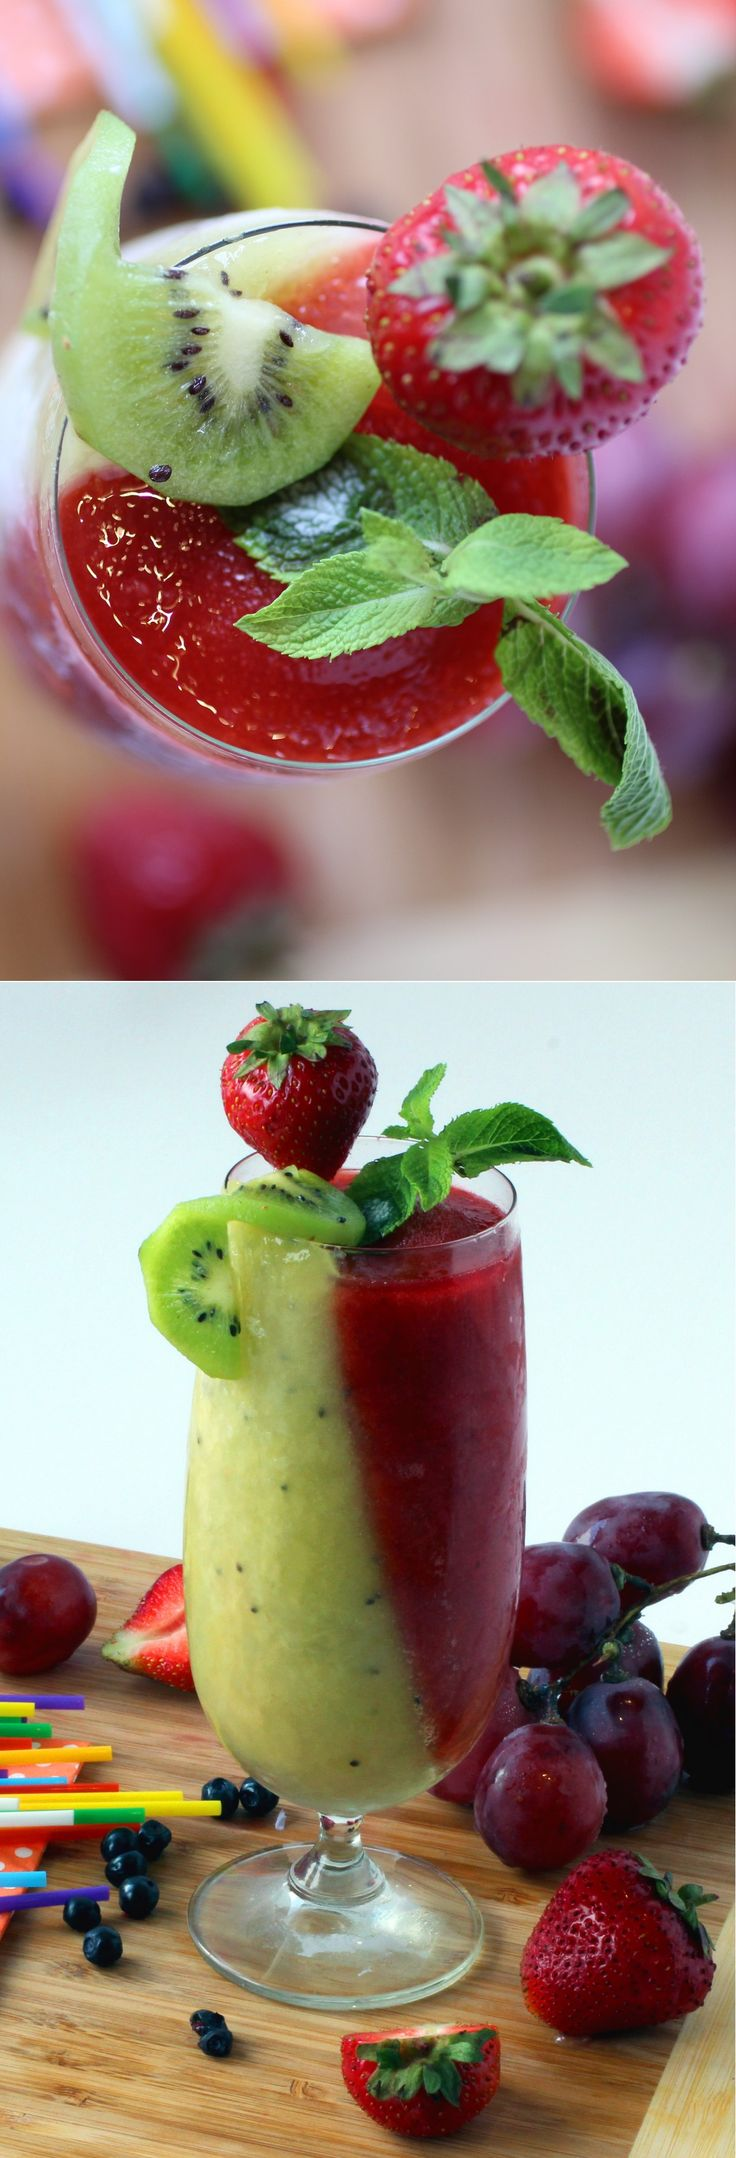 Strawberry Kiwi Frozen Mojitos ~ If you have no idea what to serve as a drink on a next party you're going to arrange, that this recipe will be helpful for you!